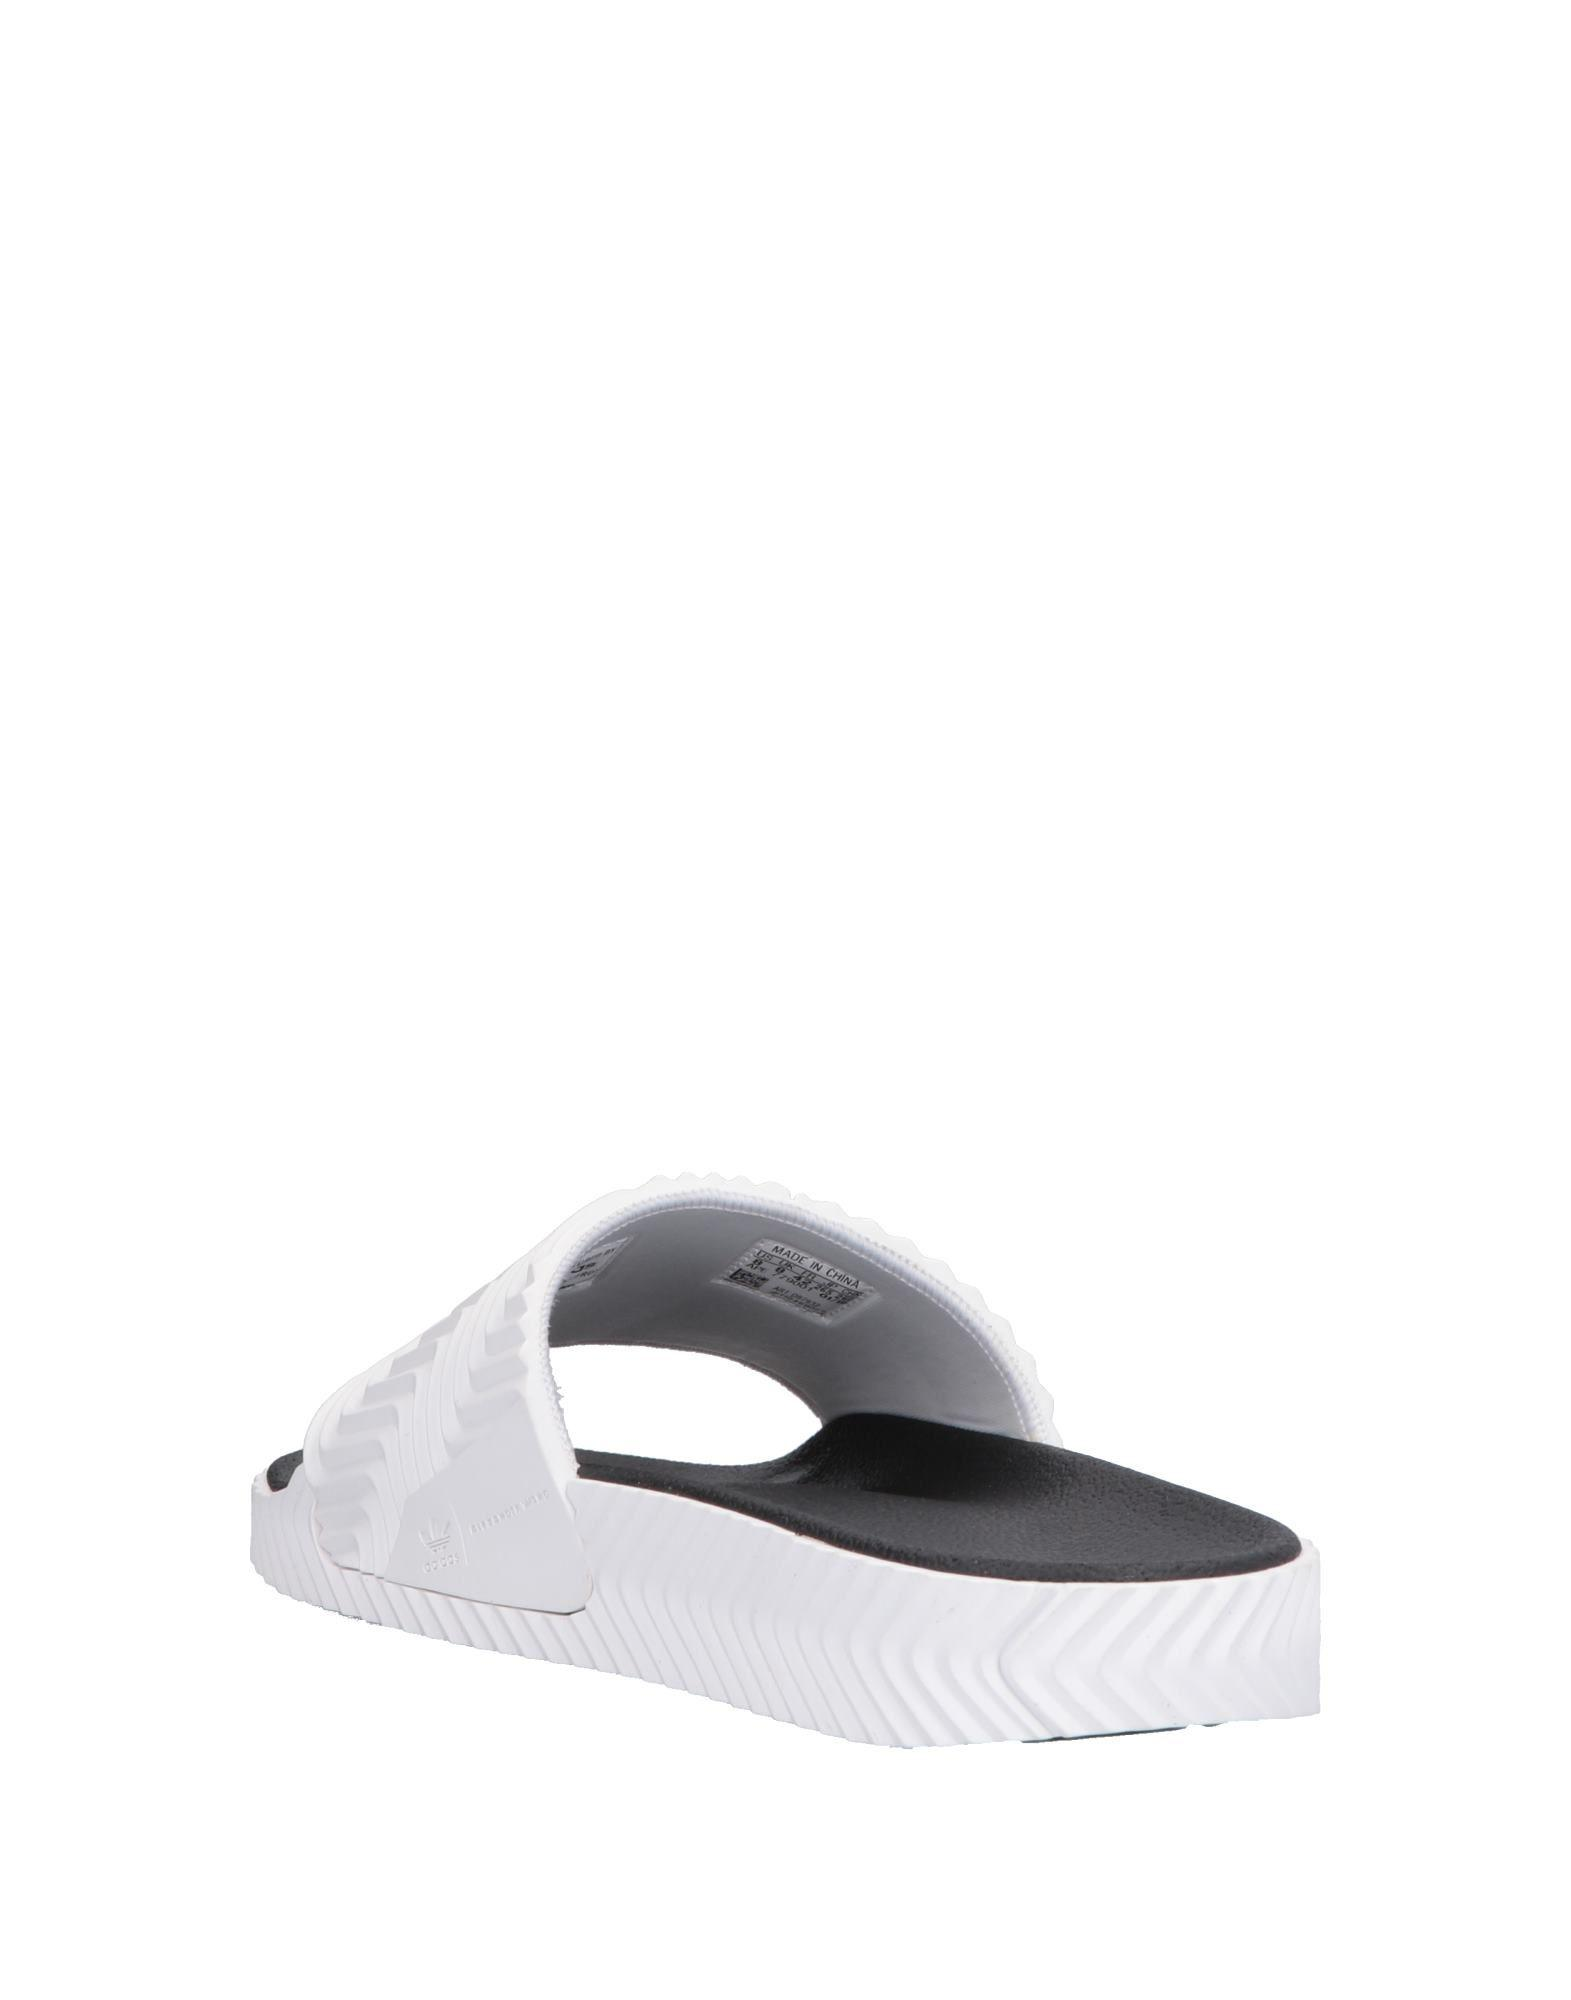 38d56d63dbca Lyst - adidas Originals Sandals in White for Men